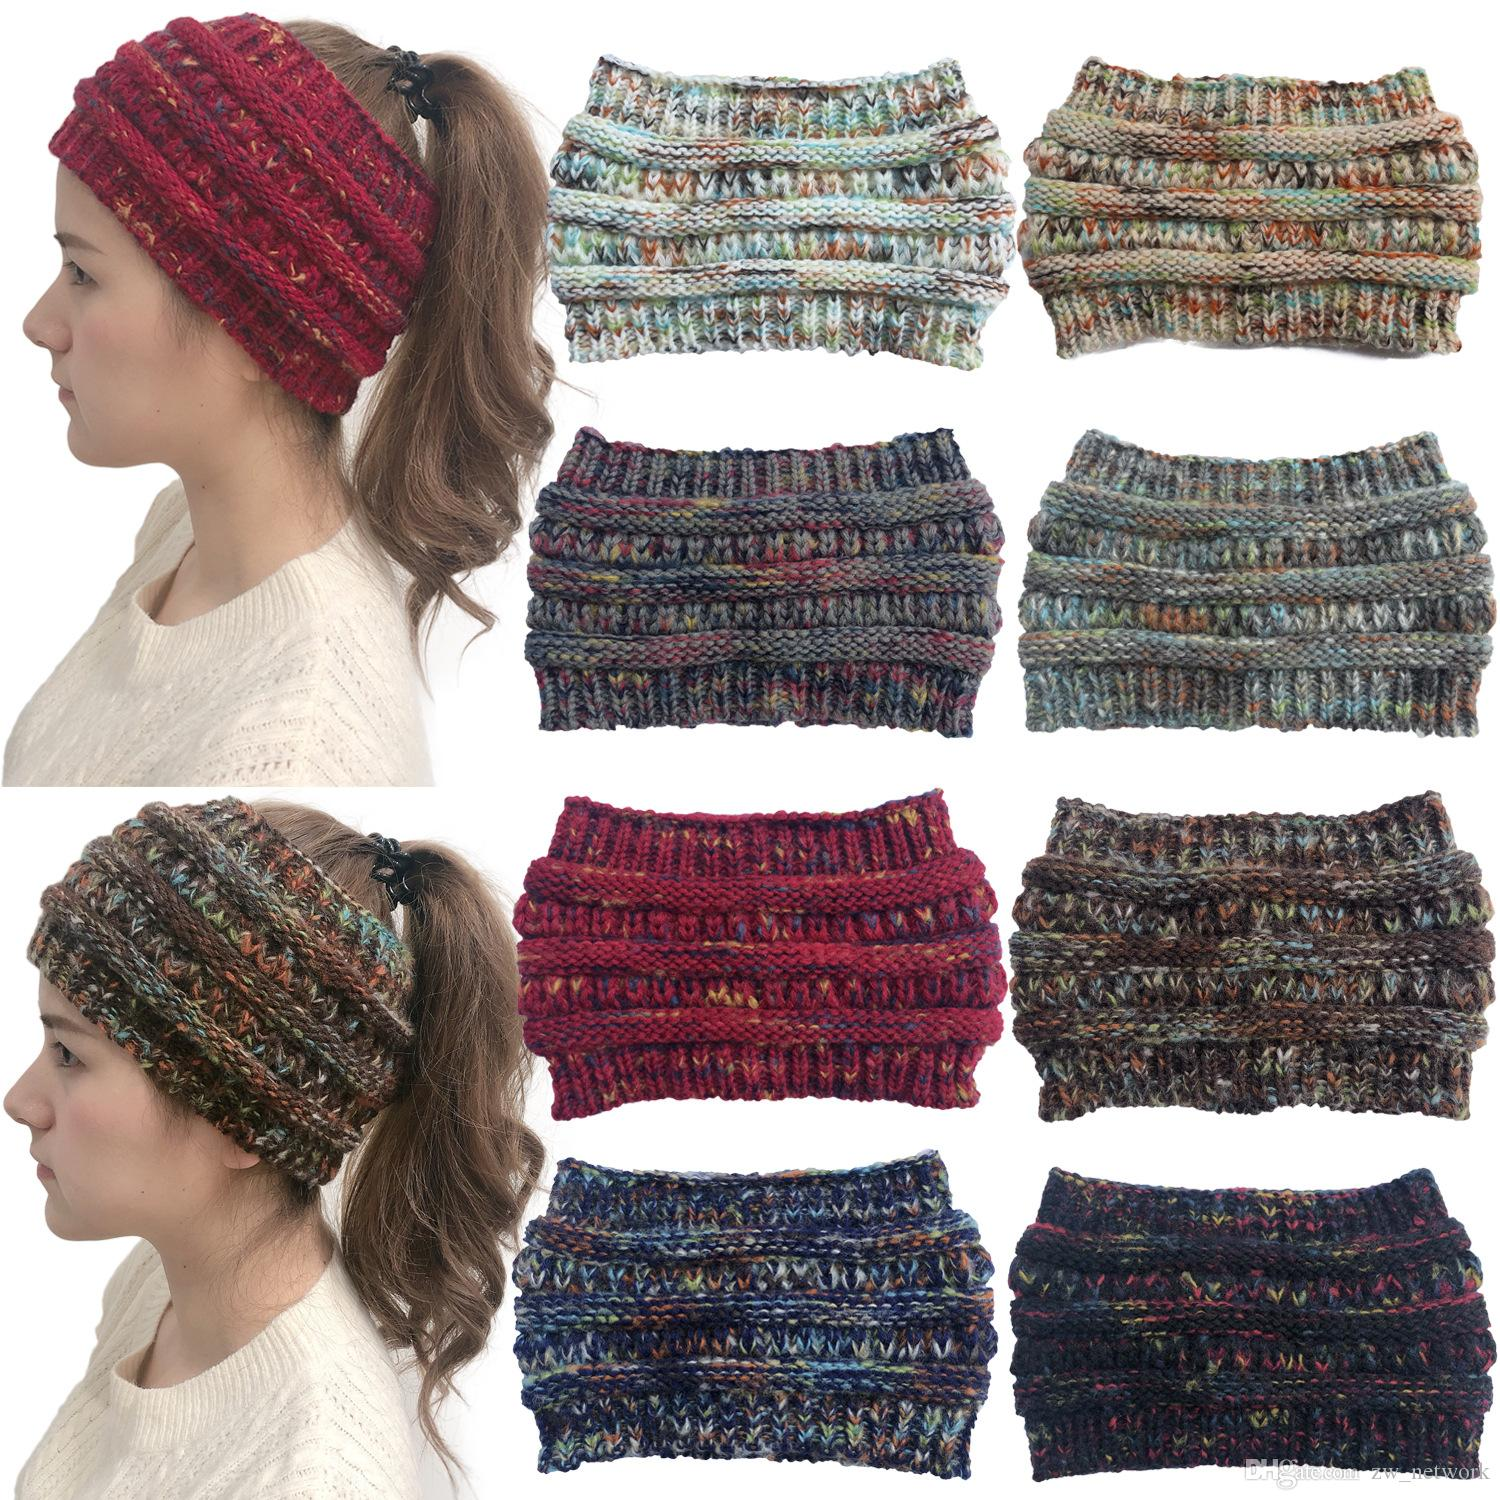 New winter colorful dot knitted headband widened woolen hat for women outdoor elastic hair band visor cap A07